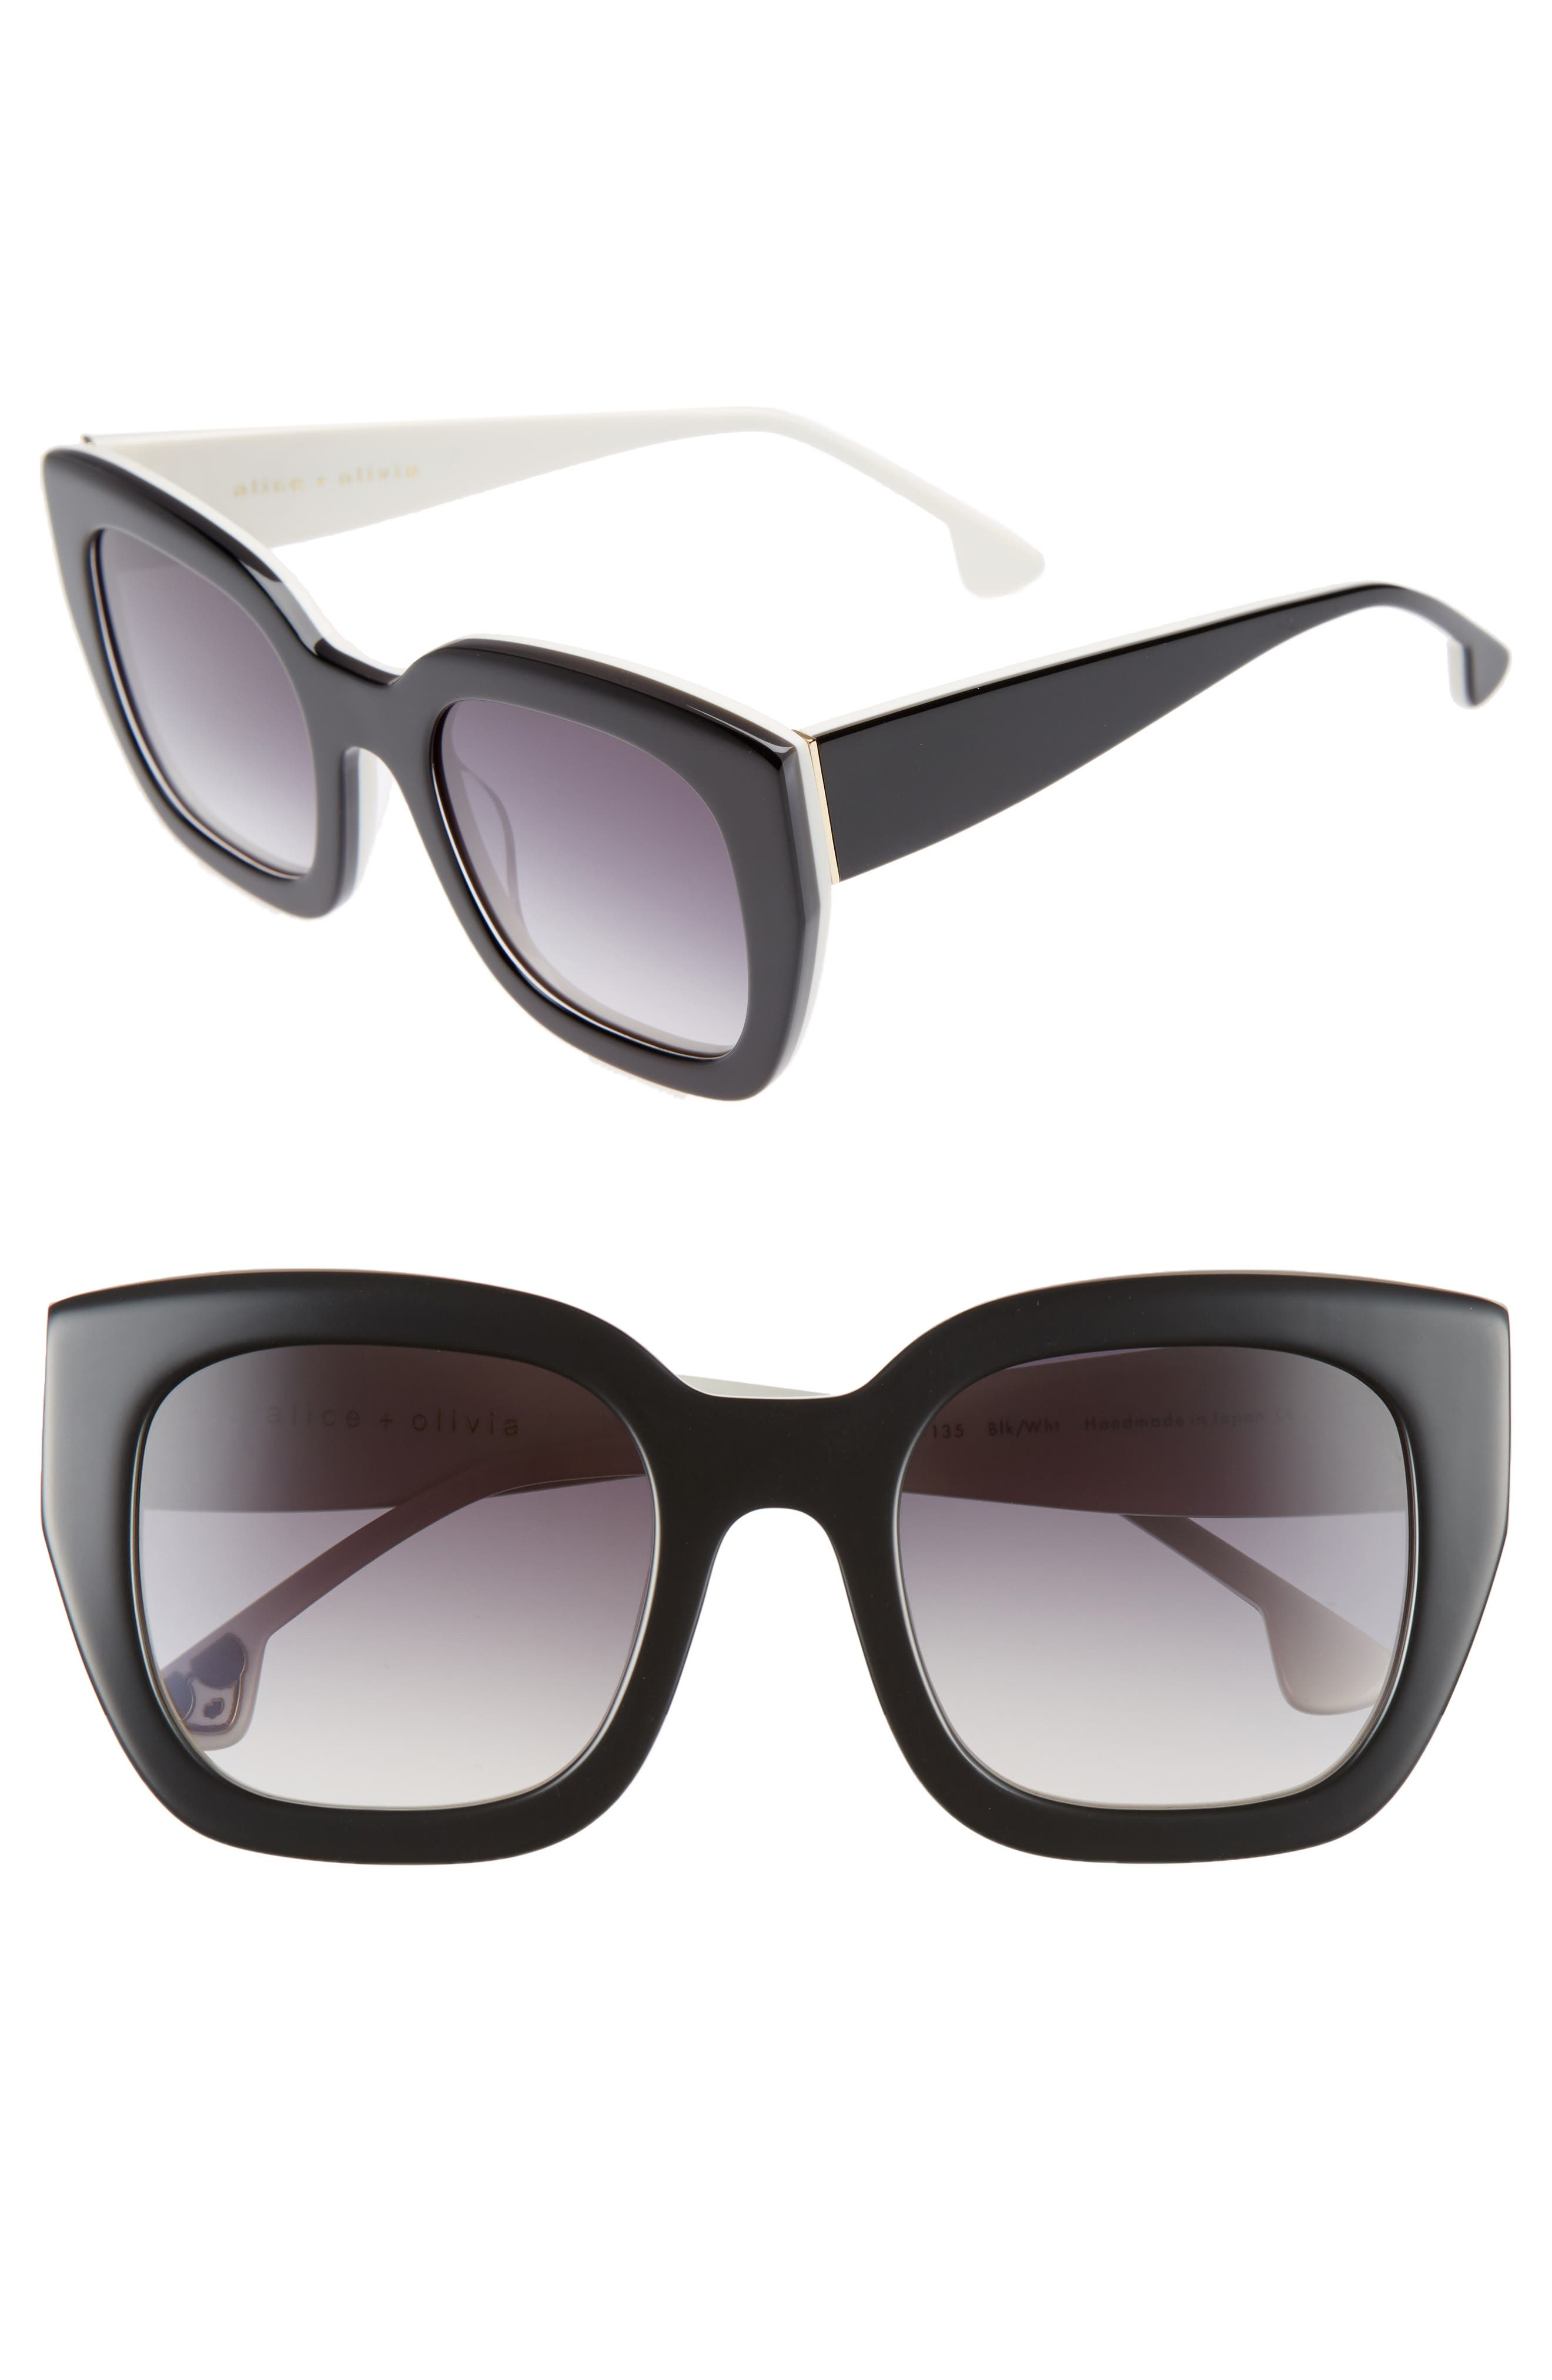 Aberdeen 50mm Square Sunglasses,                             Main thumbnail 1, color,                             001